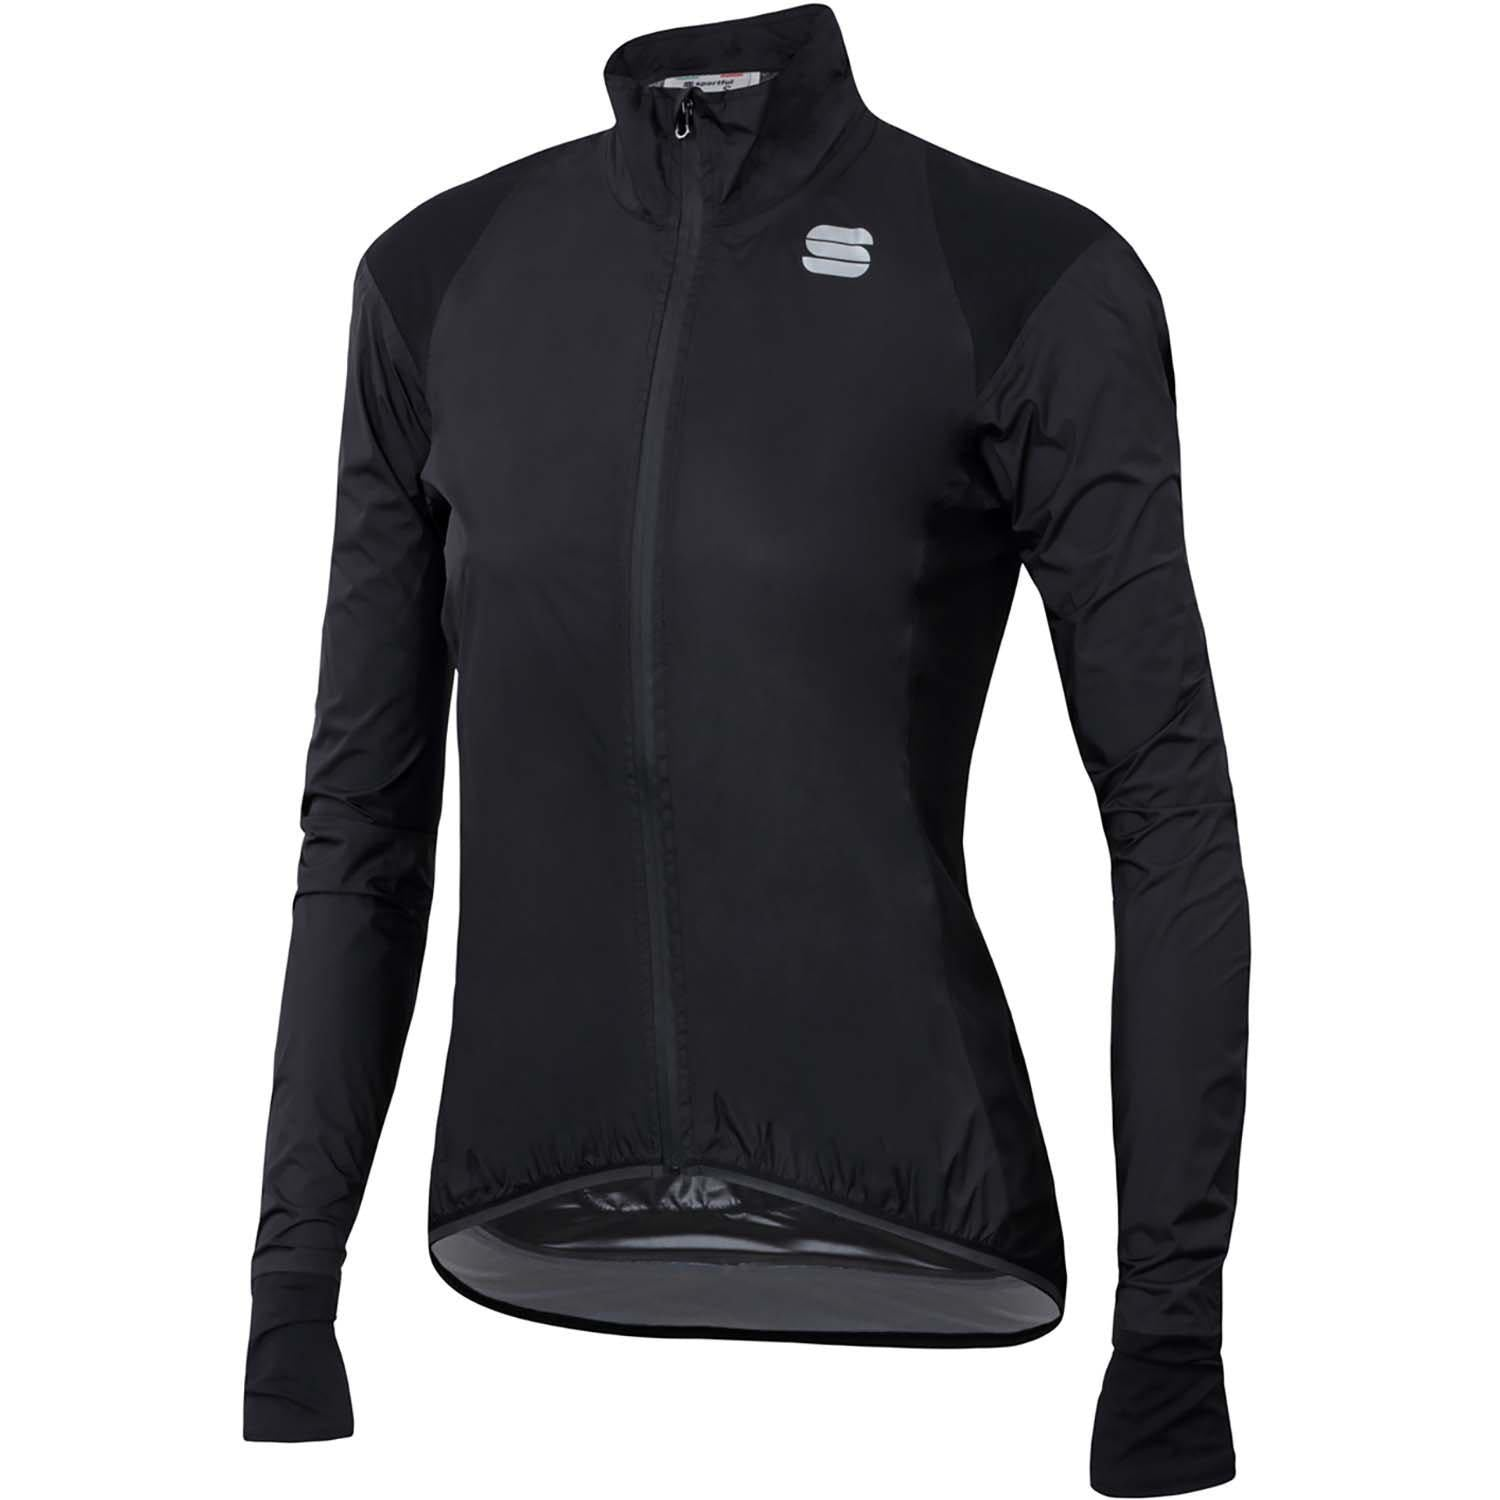 Sportful-Sportful Hot Pack NoRain Women's Jacket-Black-XS-SF200860021-saddleback-elite-performance-cycling